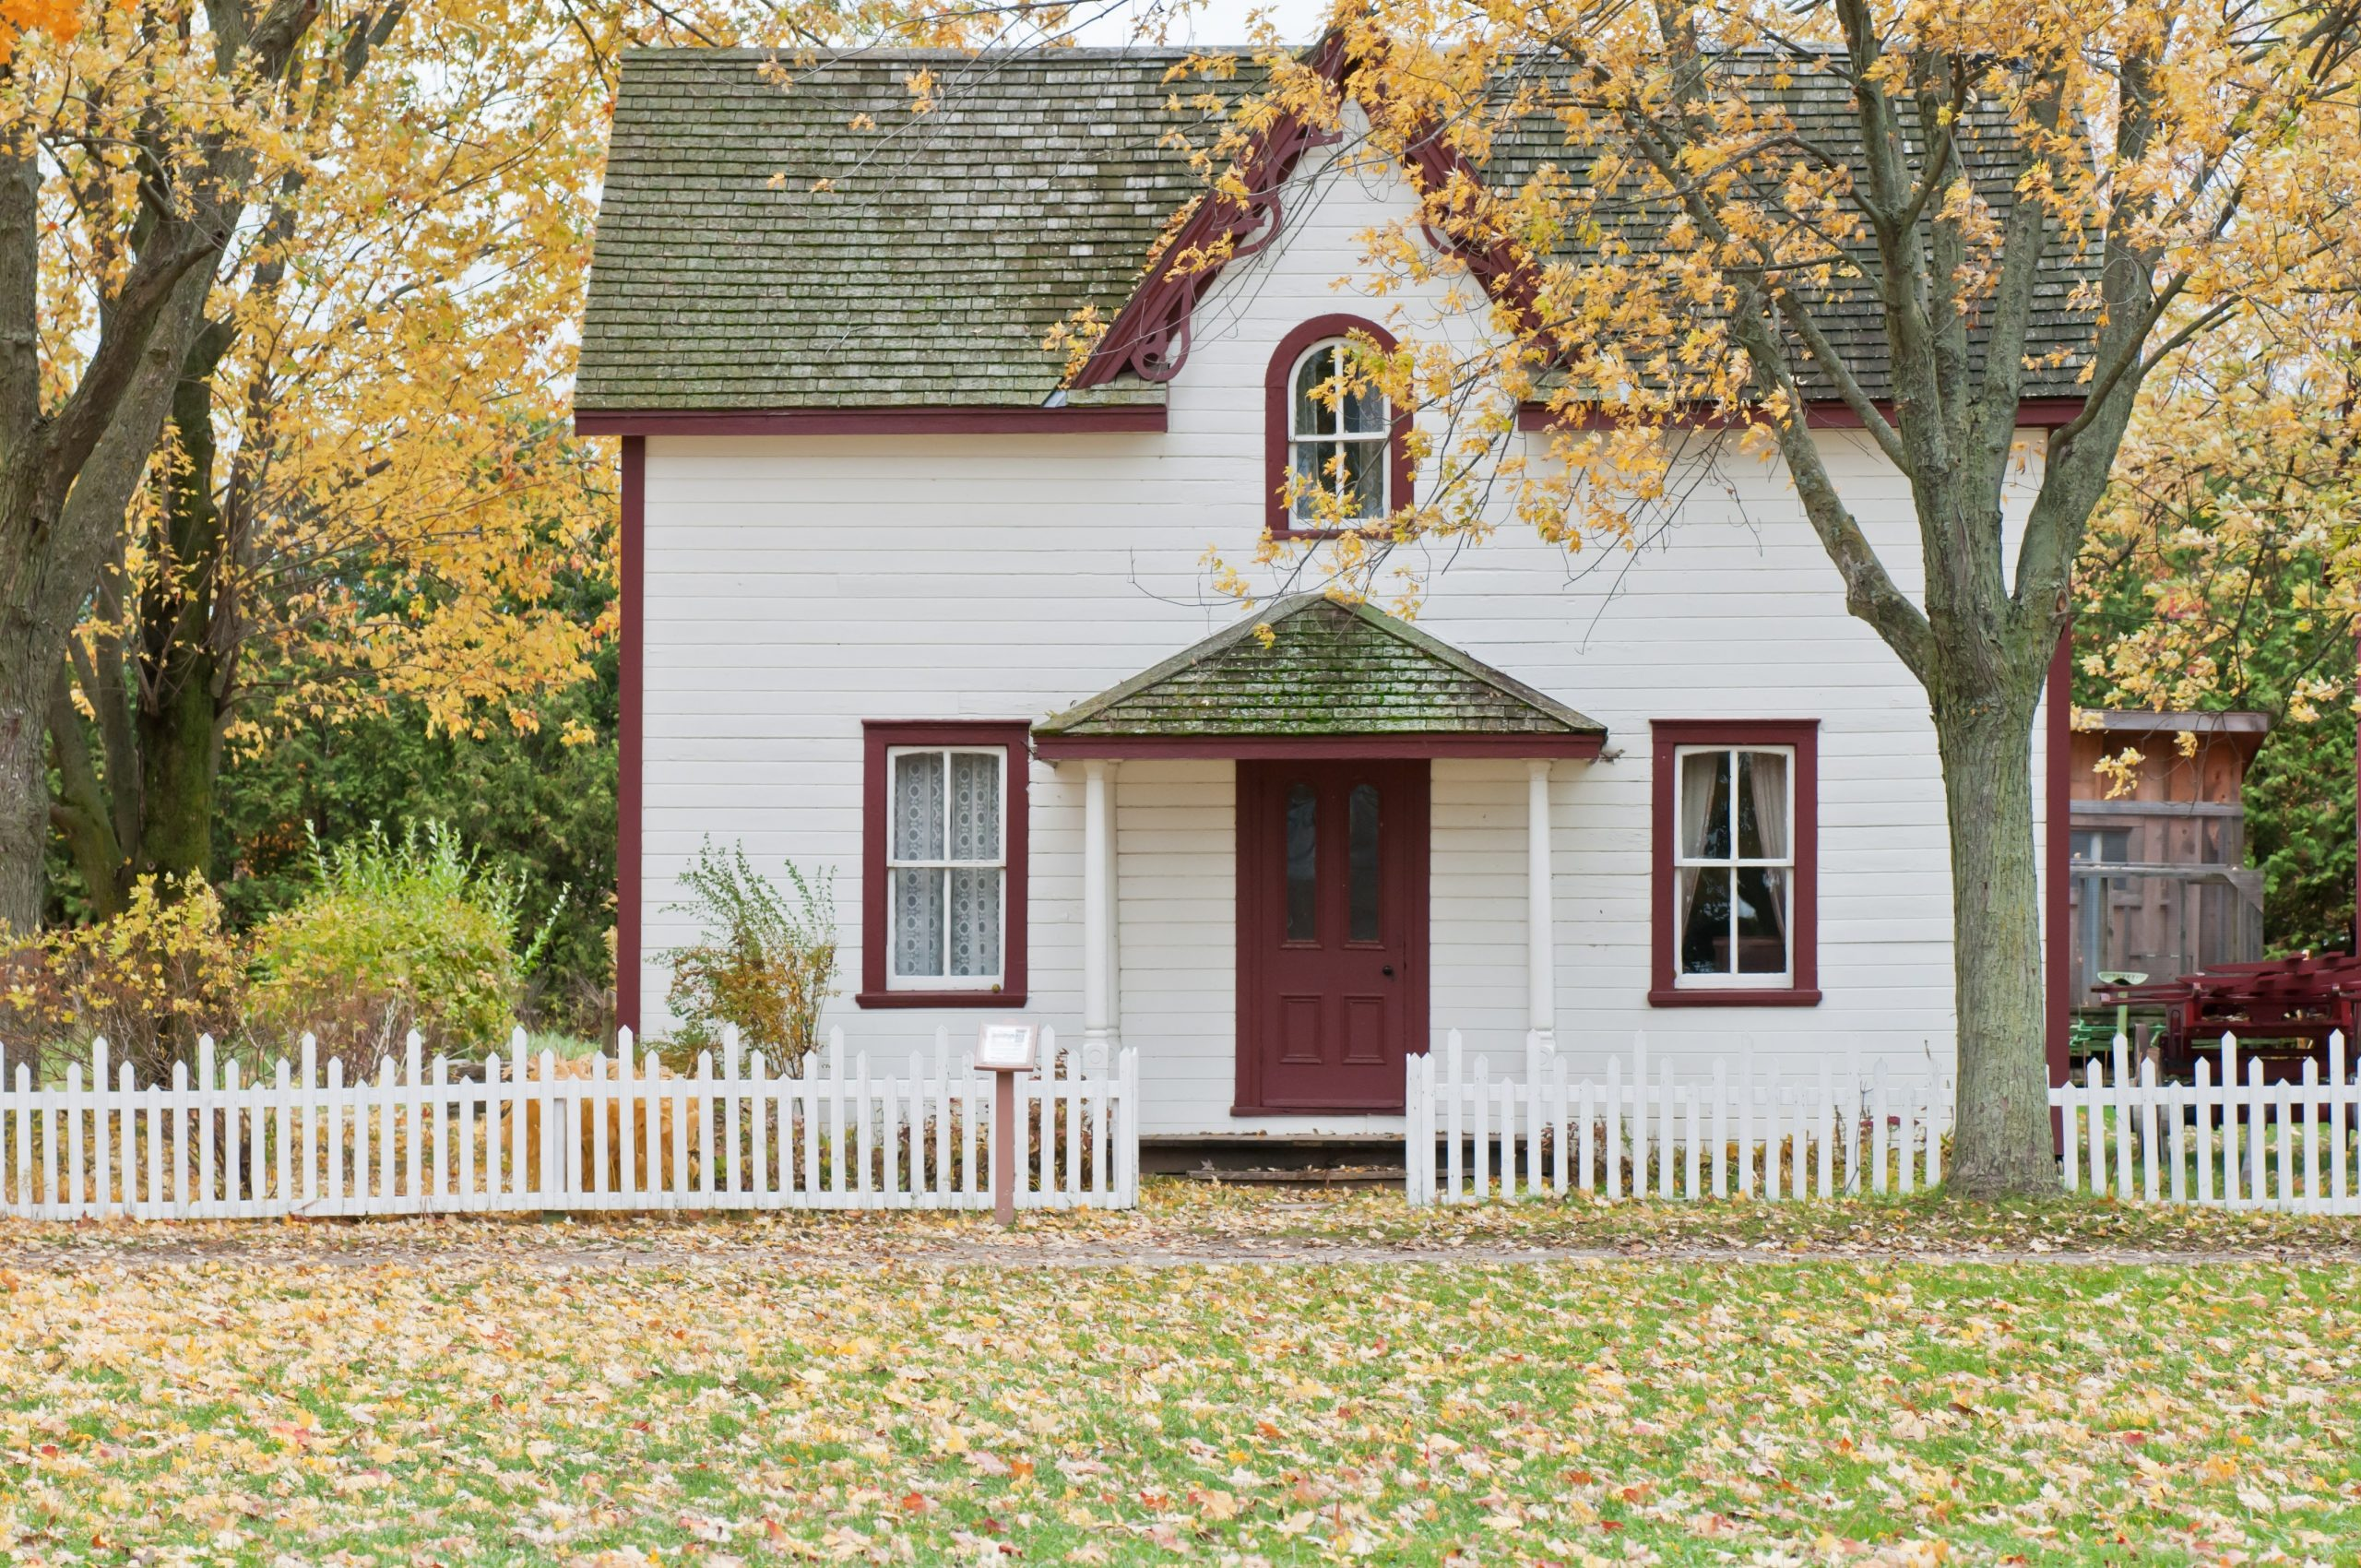 Home exterior in the fall